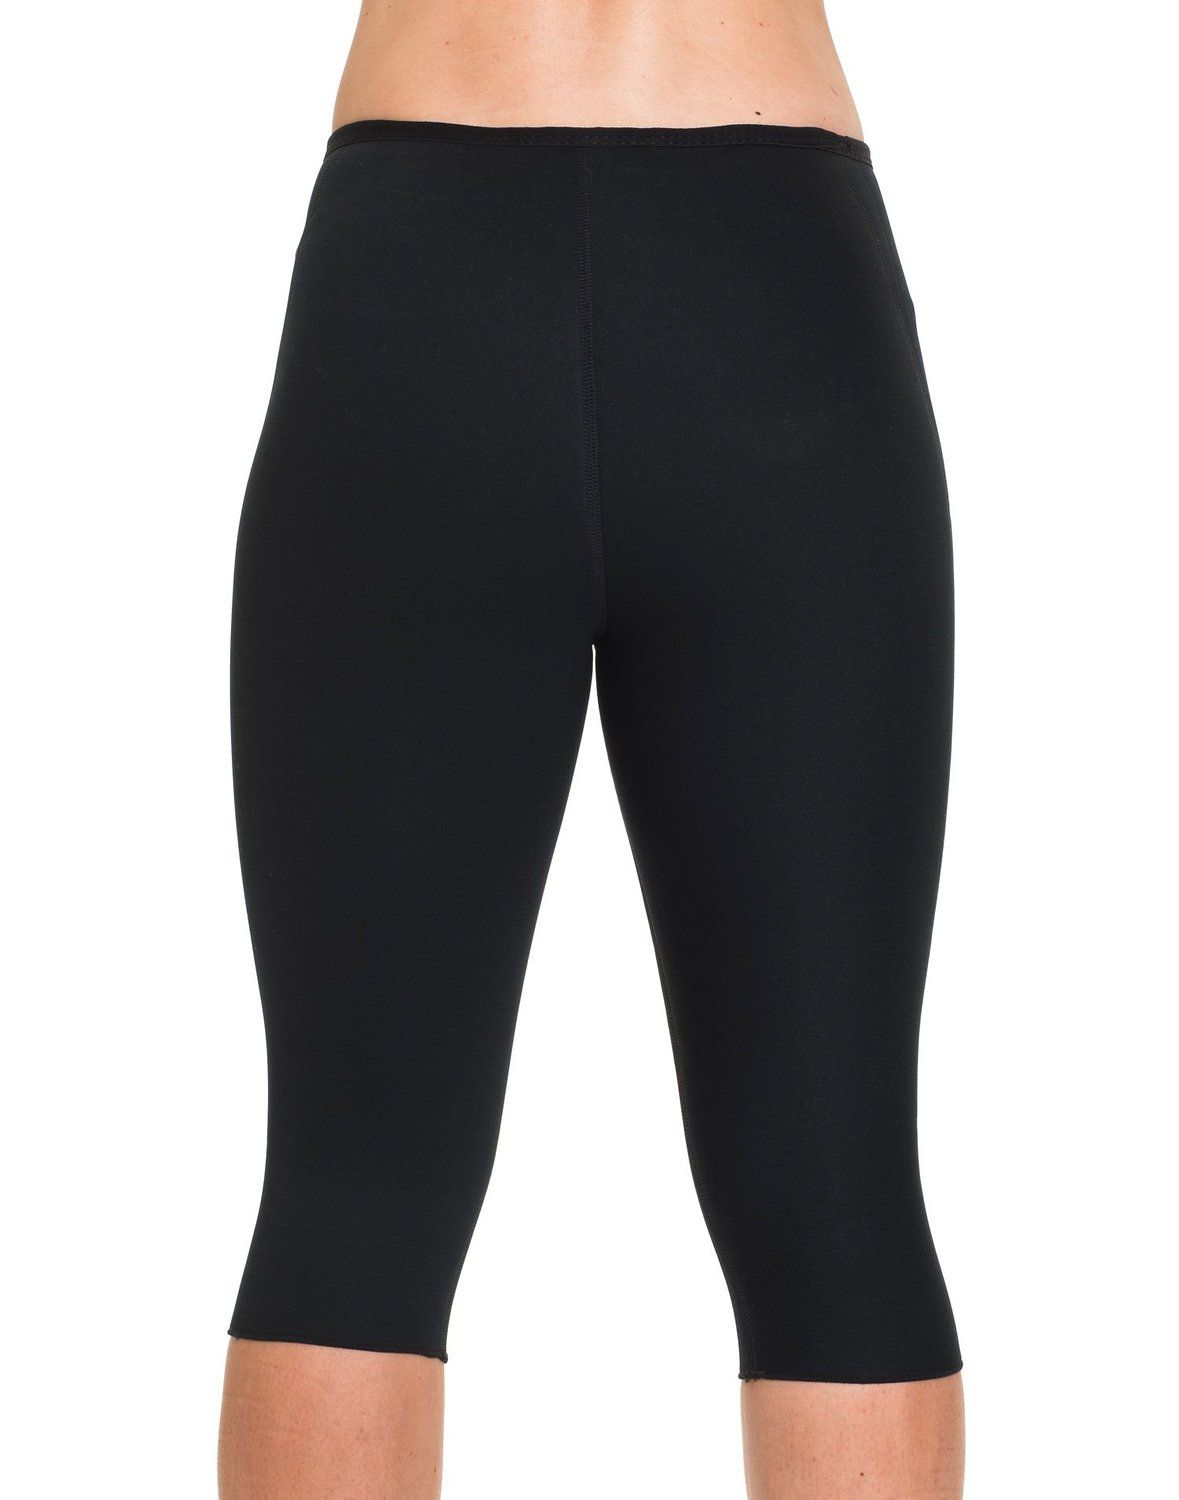 Excellent The Tights Themselves Are Made From Three Neoprene  Softshell Pants &163TBC  $140  AU$TBC Are Technical To Keep You Comfy On Your Commute But Stylish If Youre Not Keen On Lyrca Theyre Available